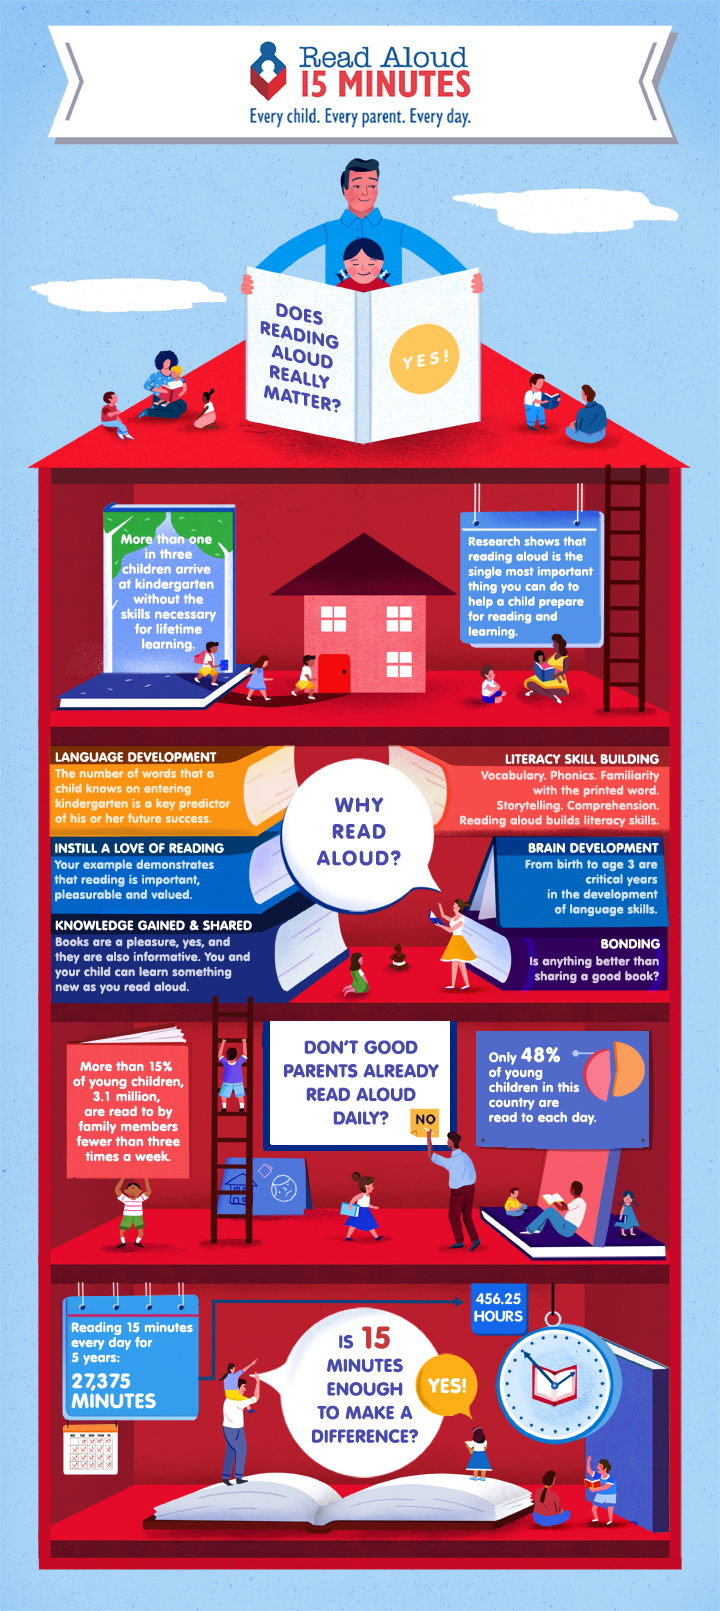 Does Reading Aloud Really Matter? Infographic